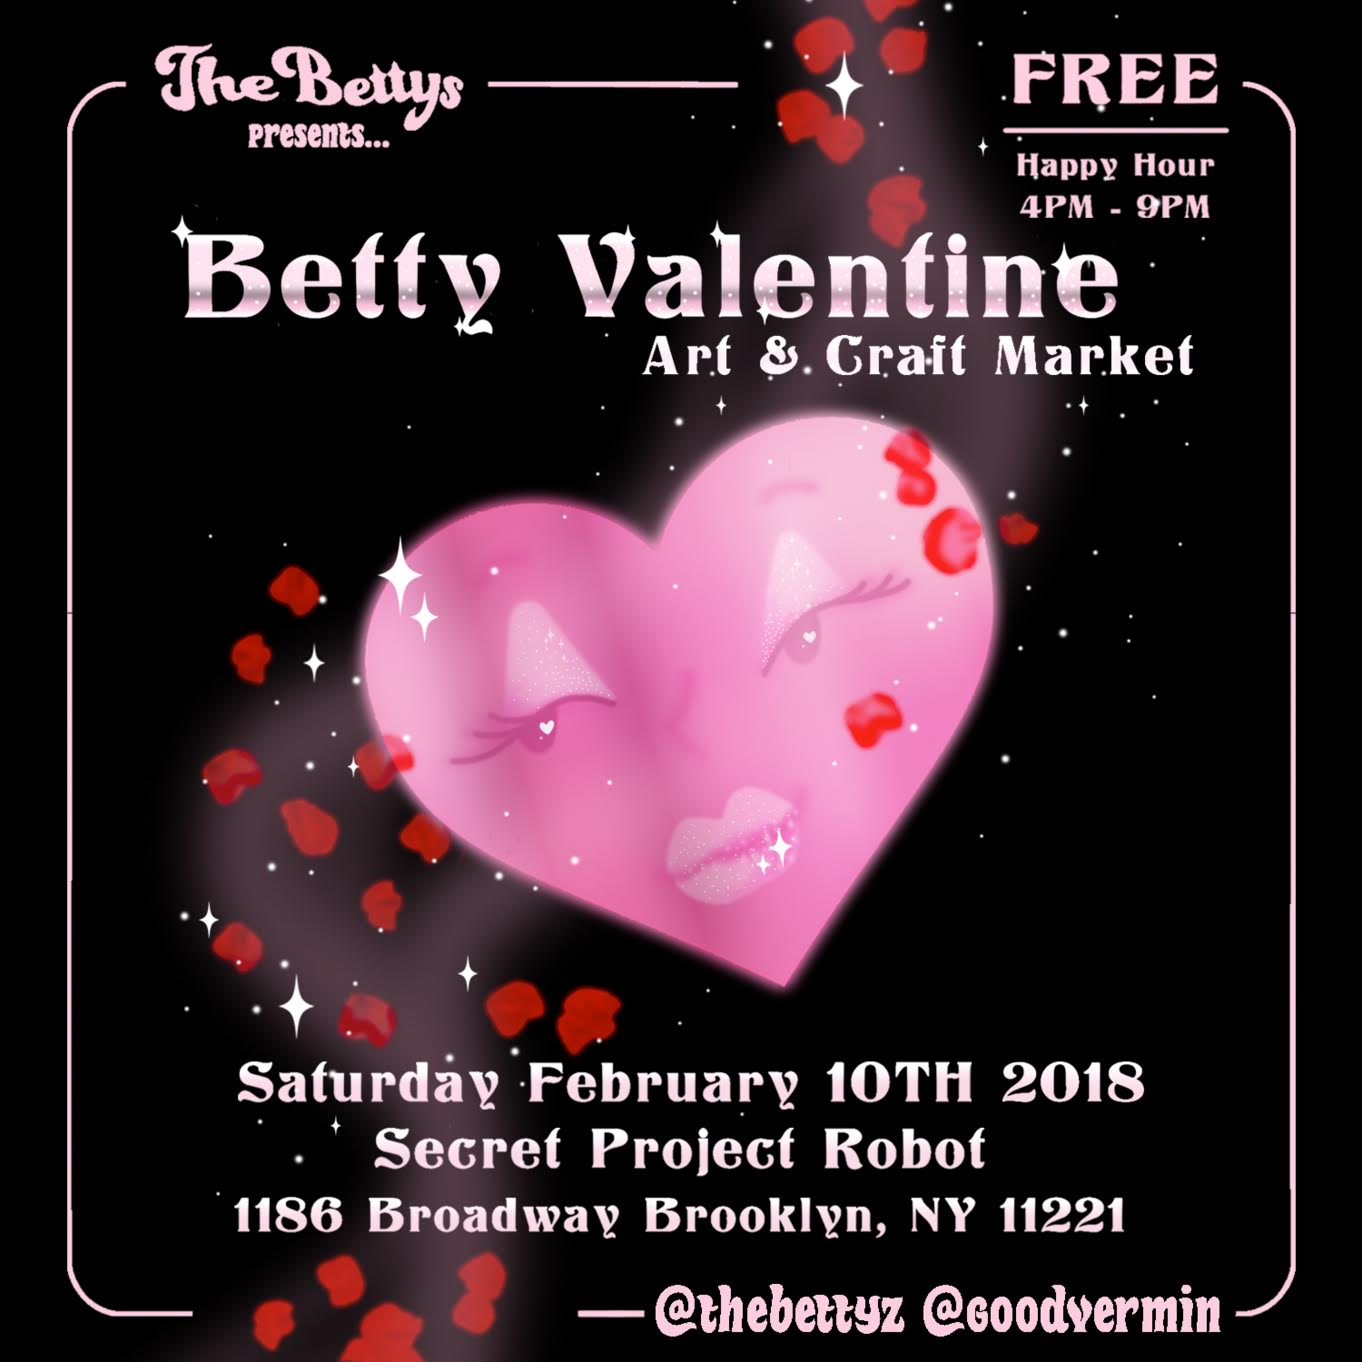 Betty Valentine Art & Craft Market - Time02/10/2017LocationSecret Project RobotIntroGet your BFF, S/O, grandma and/or momma a gift at our 2nd installment of our art and craft market, Valentines day edition. We will have another round of eclectic goods crafted by non-men creators.